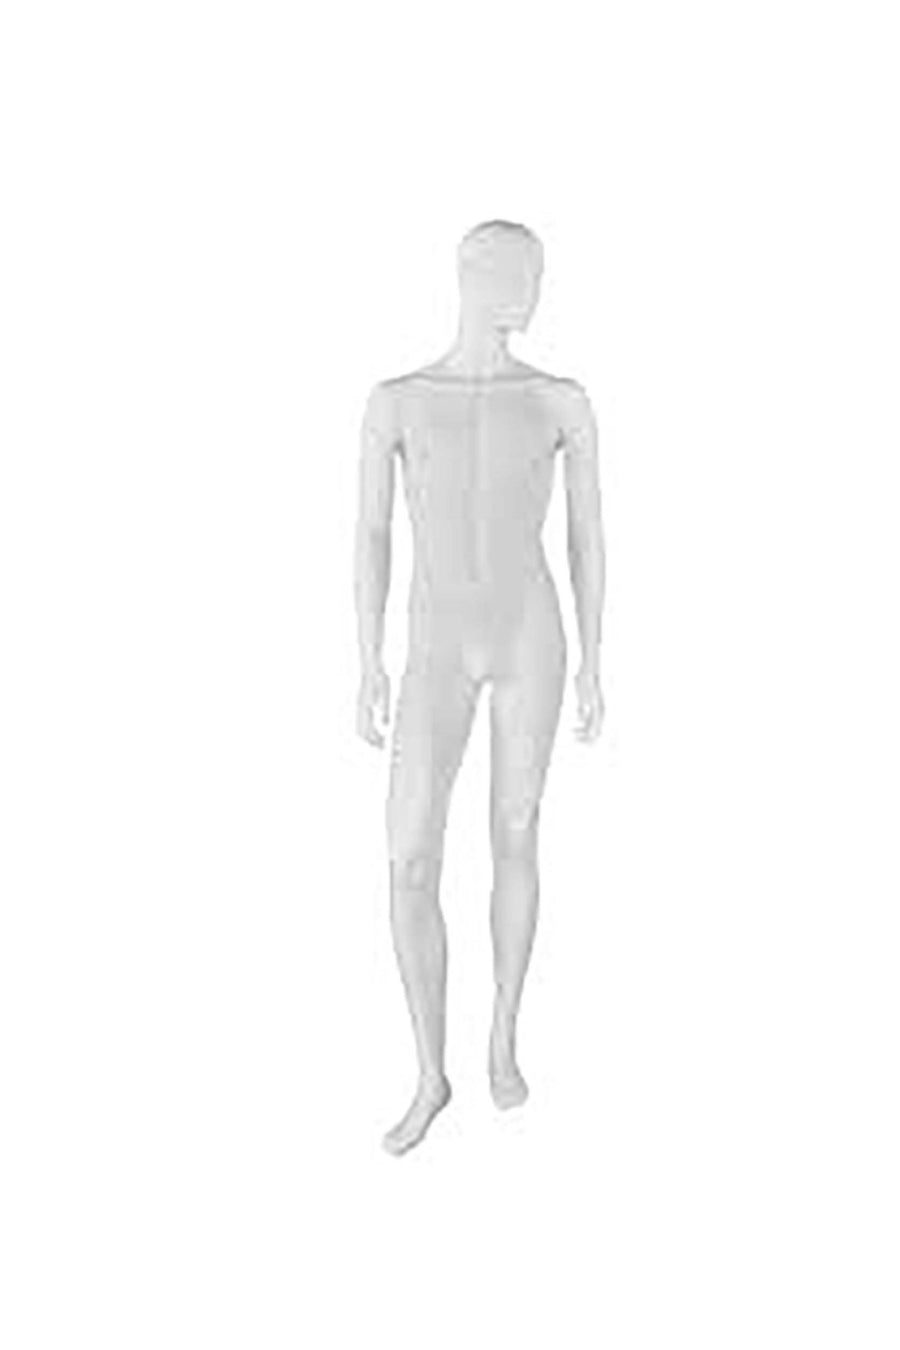 light skin tone male mannequin with arms at sides and right leg stepping forward